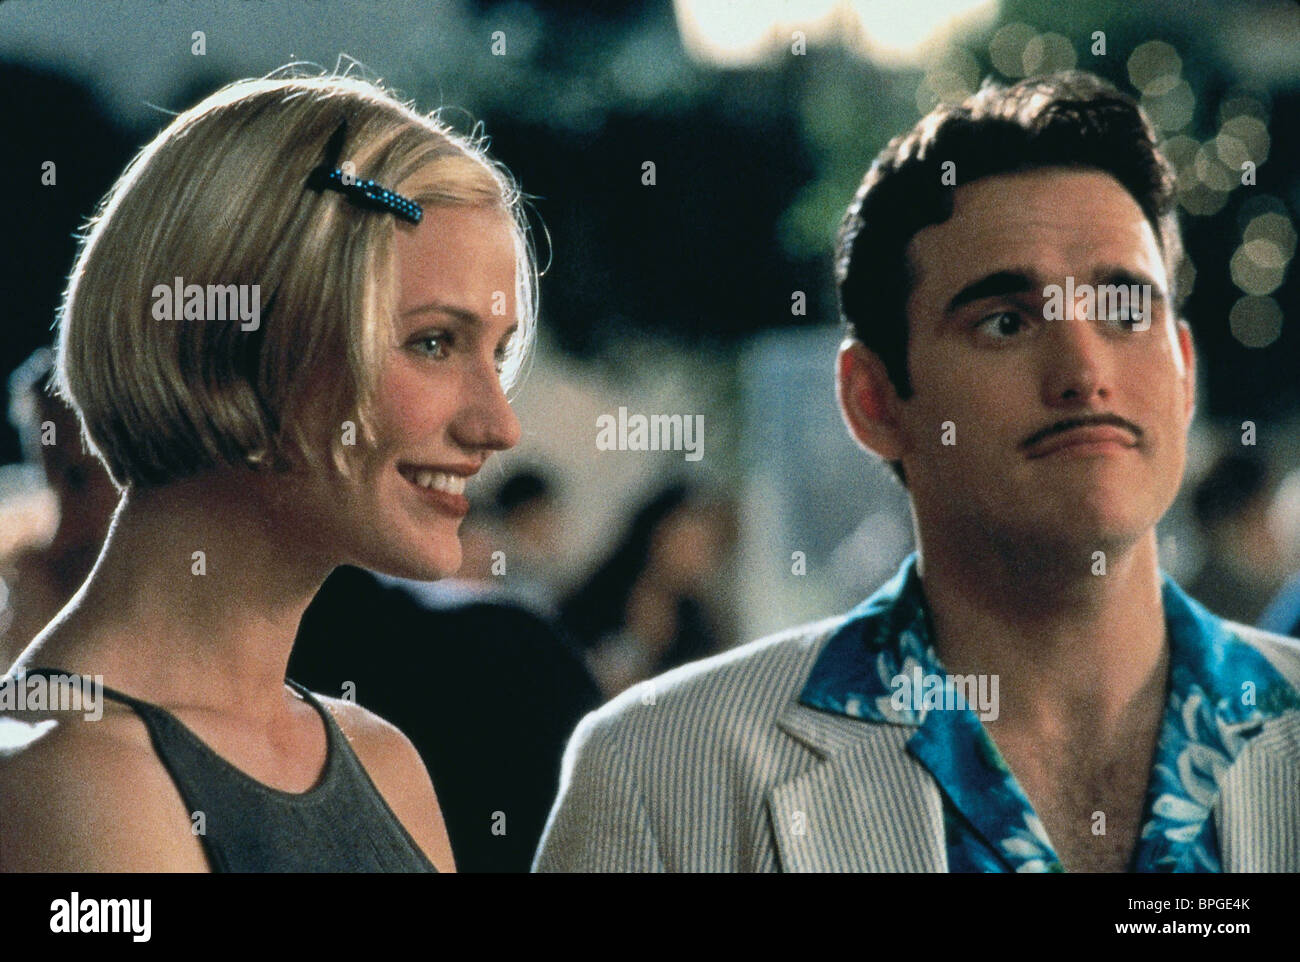 CAMERON DIAZ, MATT DILLON, THERE'S SOMETHING ABOUT MARY, 1998 - Stock Image